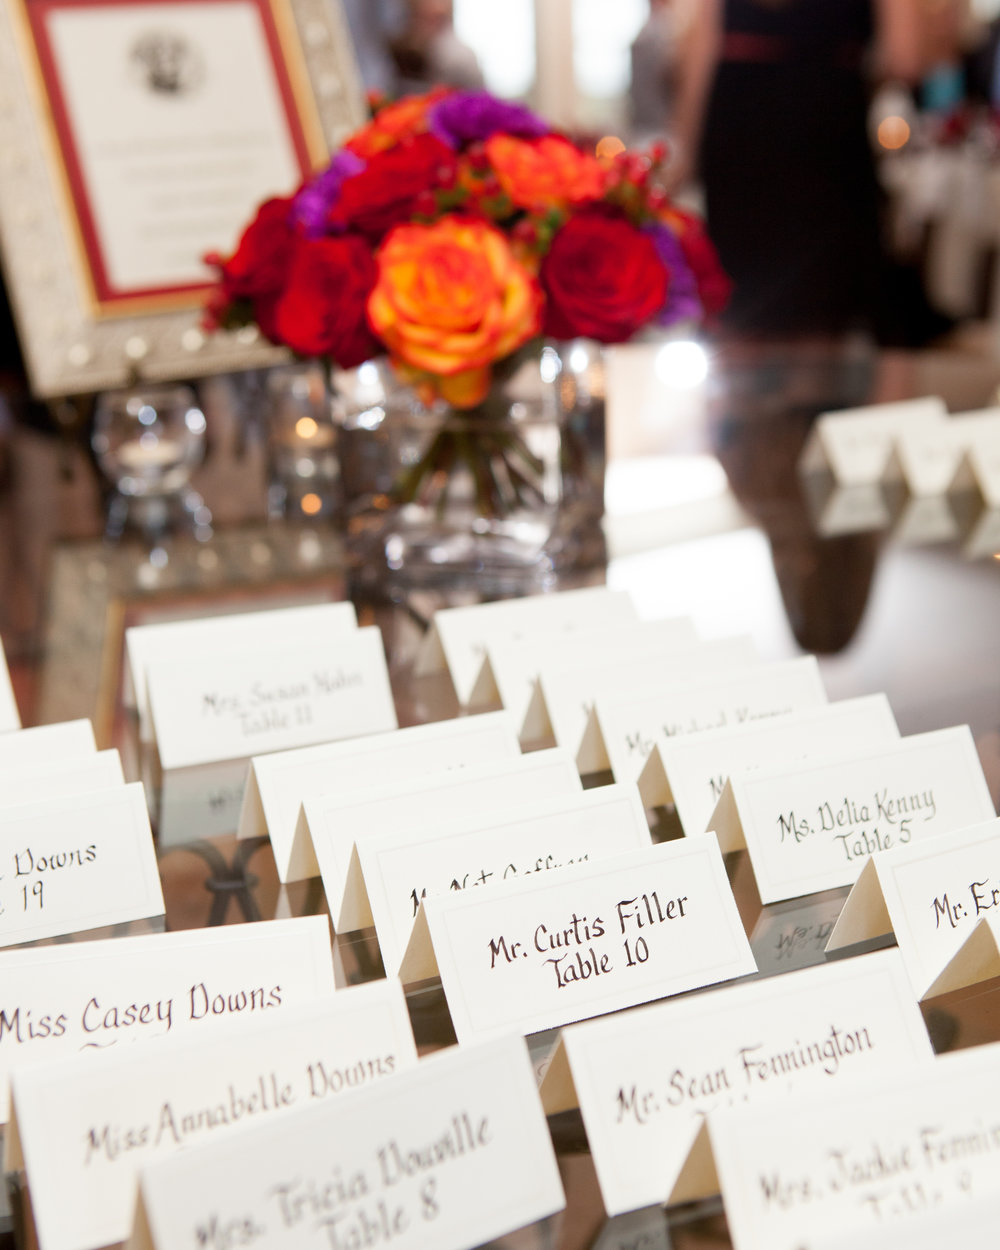 wedding reception place cards table flowers red orange purple.jpg